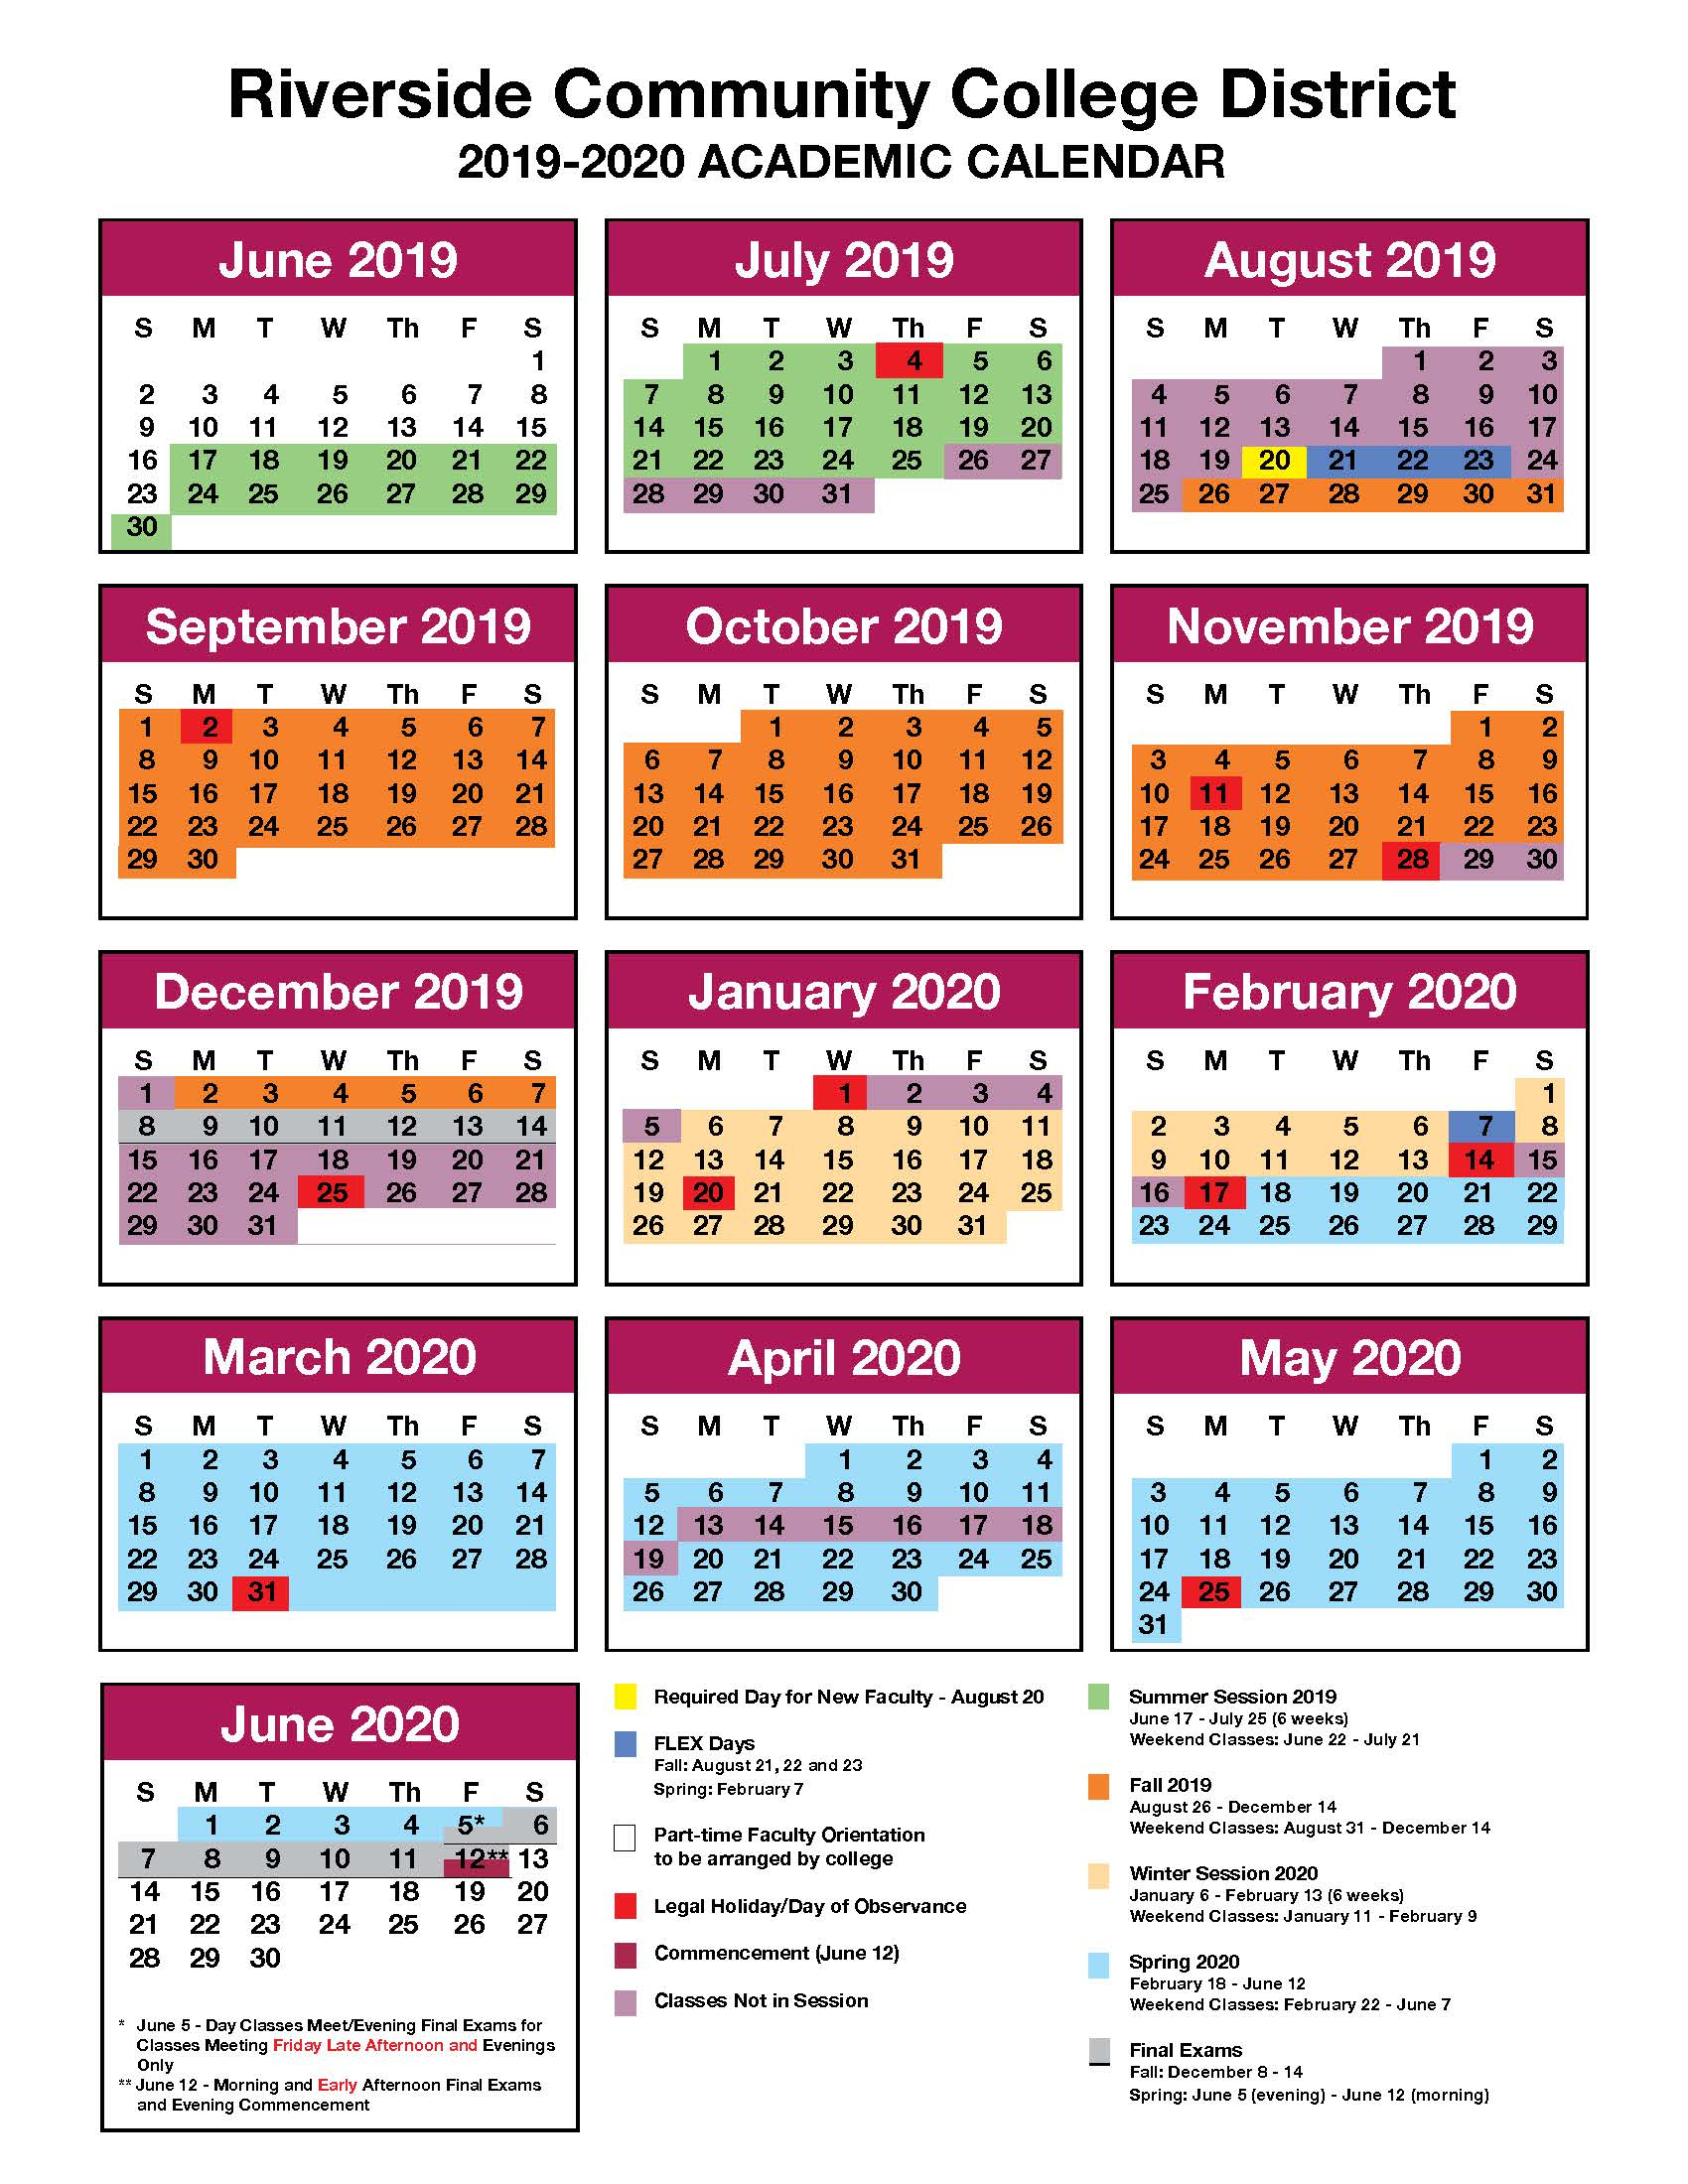 Jfk And Norco College Calendar 2019 2020 - John F. Kennedy With Regard To Norco Unified School District Calendar